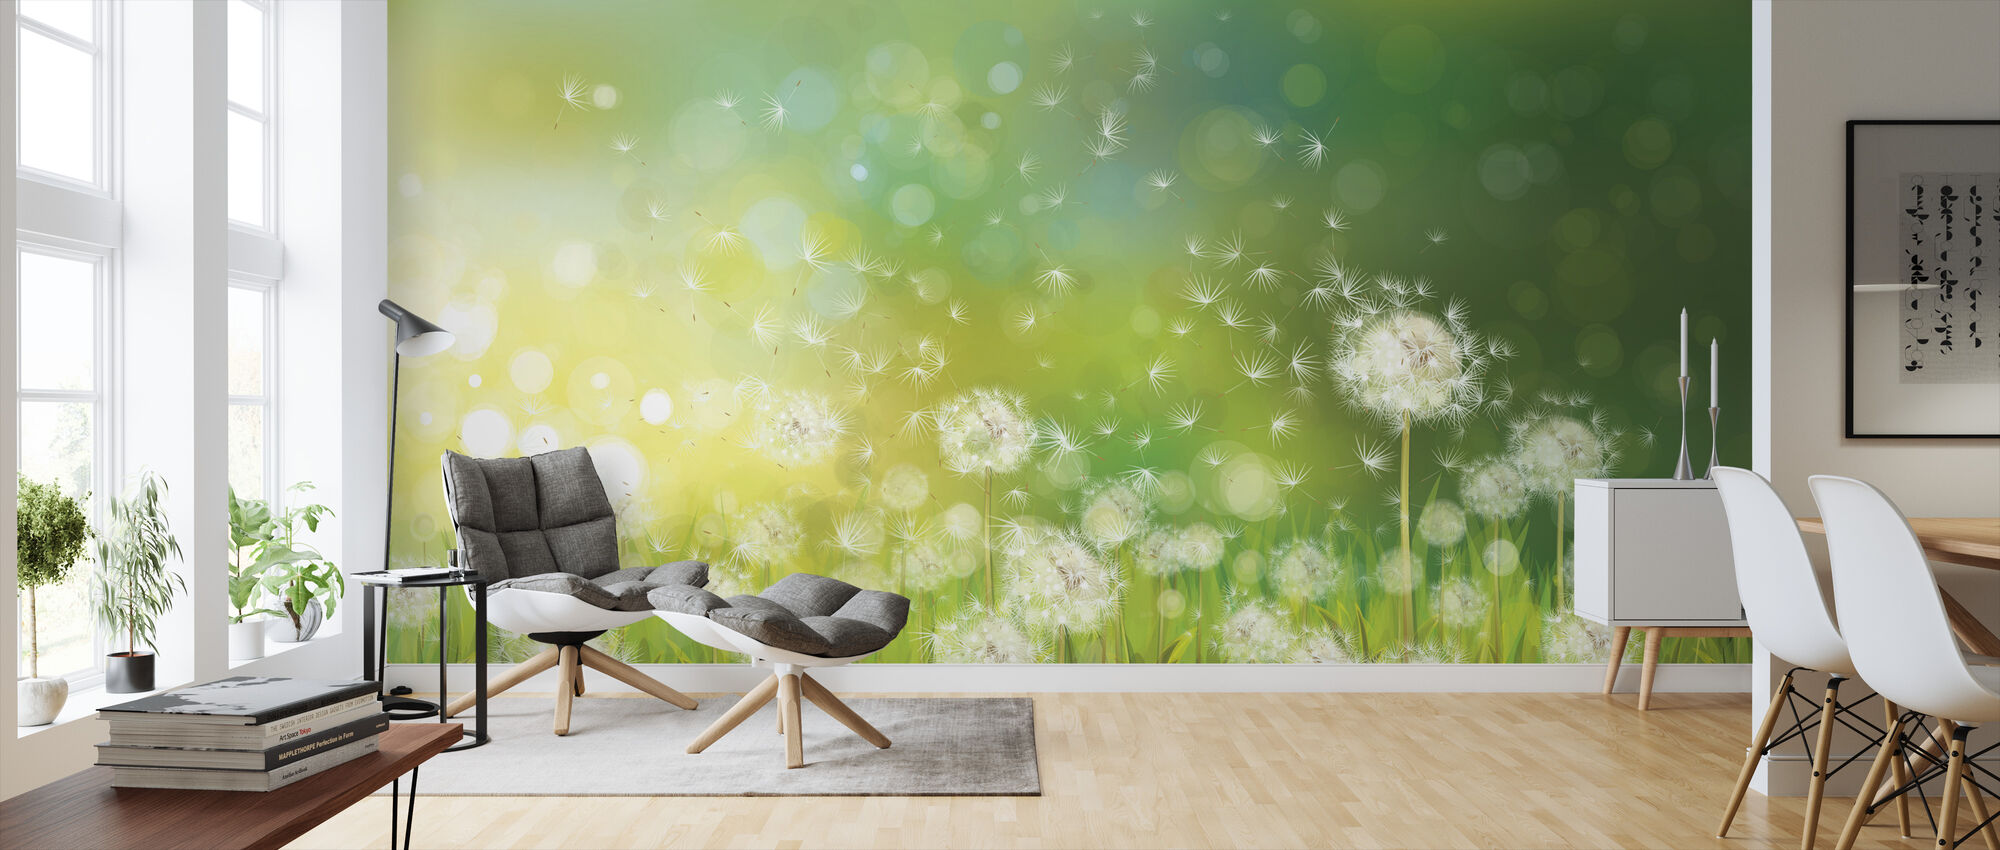 Dandelion Spring Morning - Wallpaper - Living Room